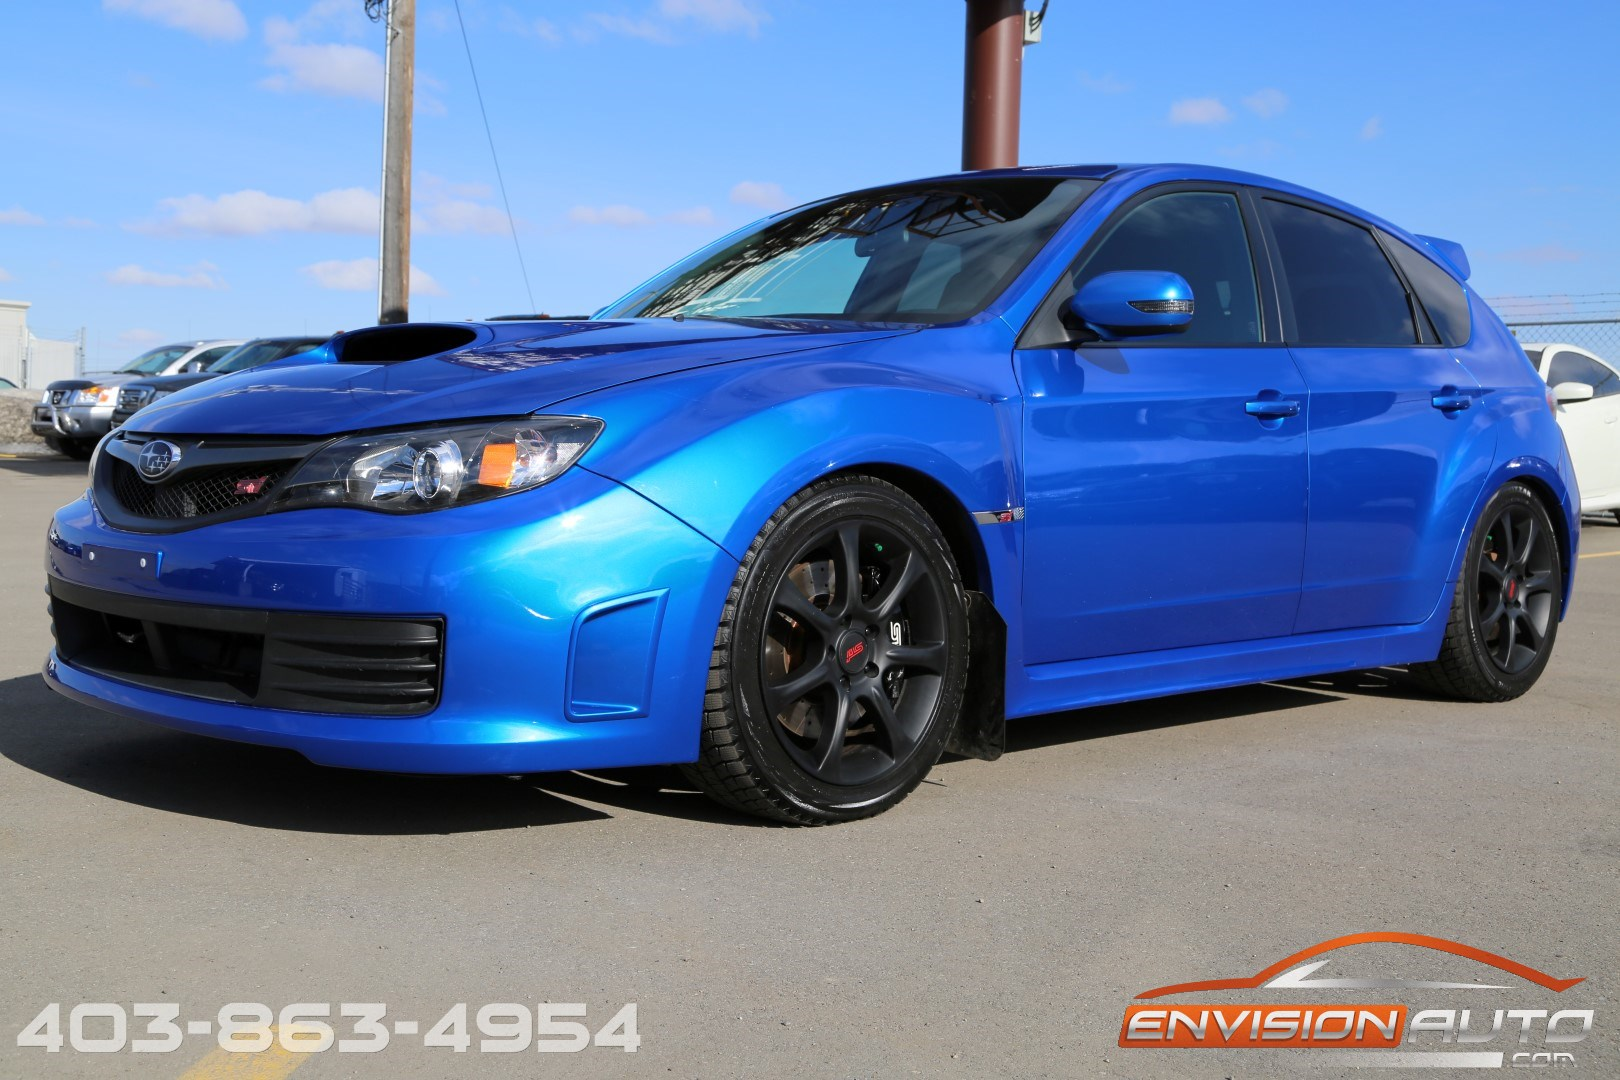 2010 subaru impreza wrx sti custom built engine only 90kms envision auto. Black Bedroom Furniture Sets. Home Design Ideas